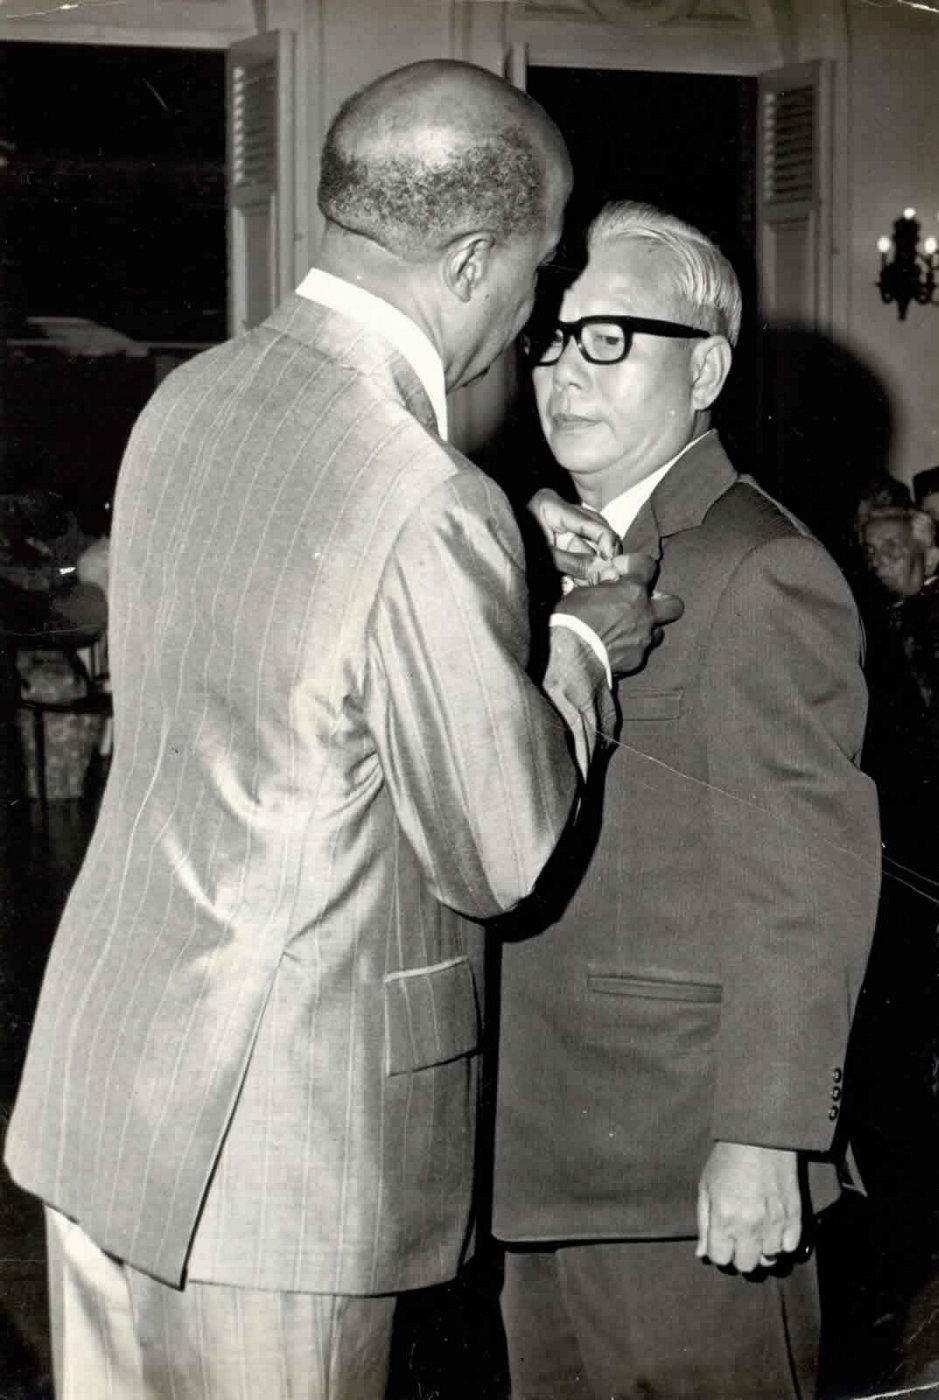 Carlton K. Mack receiving the Humming Bird Medal (Gold) from the Governor General Sir Ellis Clarke in 1975 who later became Trinidad & Tobago's first President